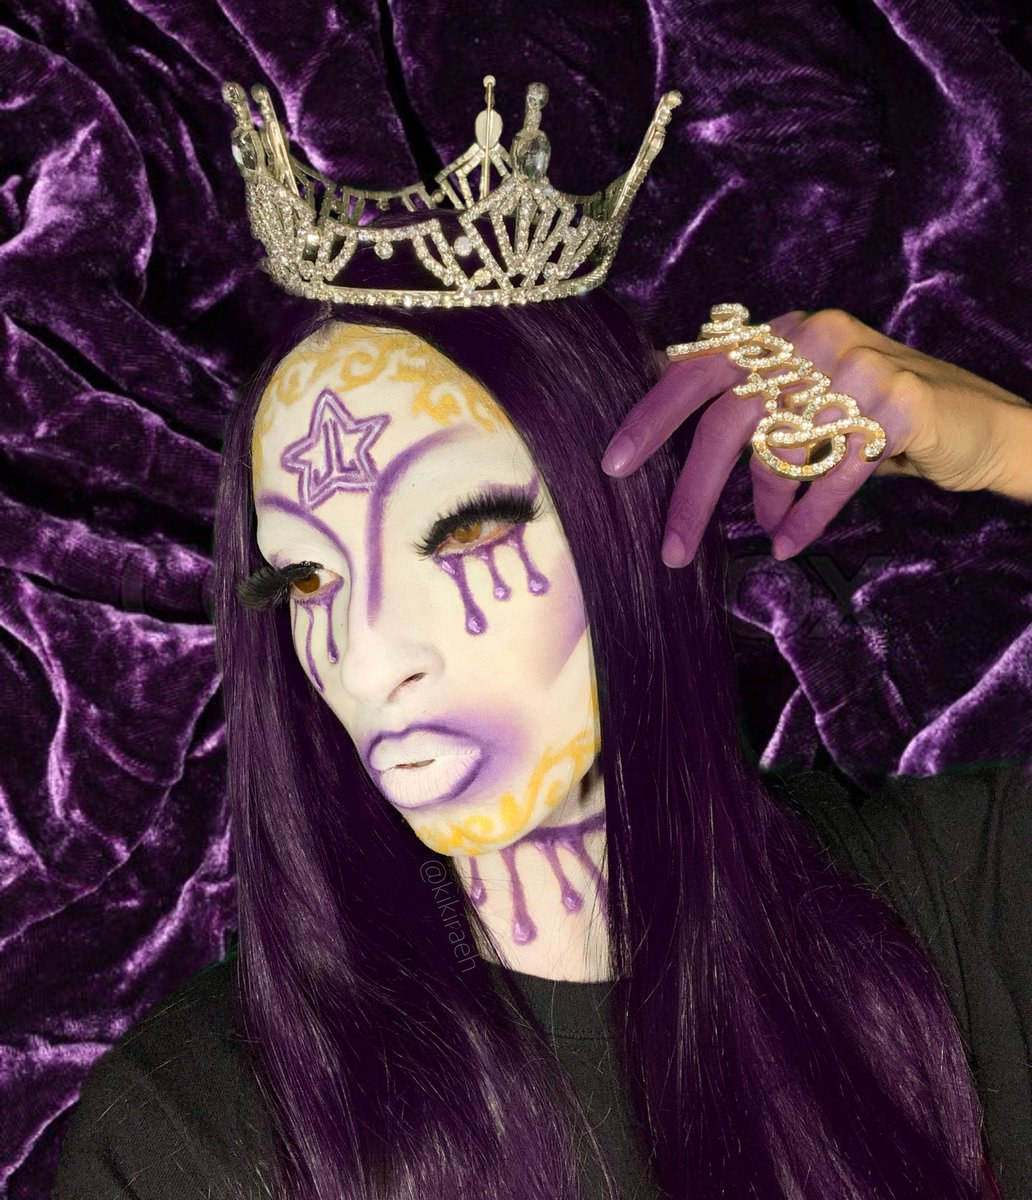 Hi @JeffreeStar I just wanted to share with you my most recent look inspired by the #BloodLust packaging, using ONLY @jeffreestarcos Alien & Jawbreaker palettes & #velourliquidlipstick in DrugLord! I hope to join the #JeffreeStarCosmetics #jeffreestarprlist one day! ⭐️💜👑